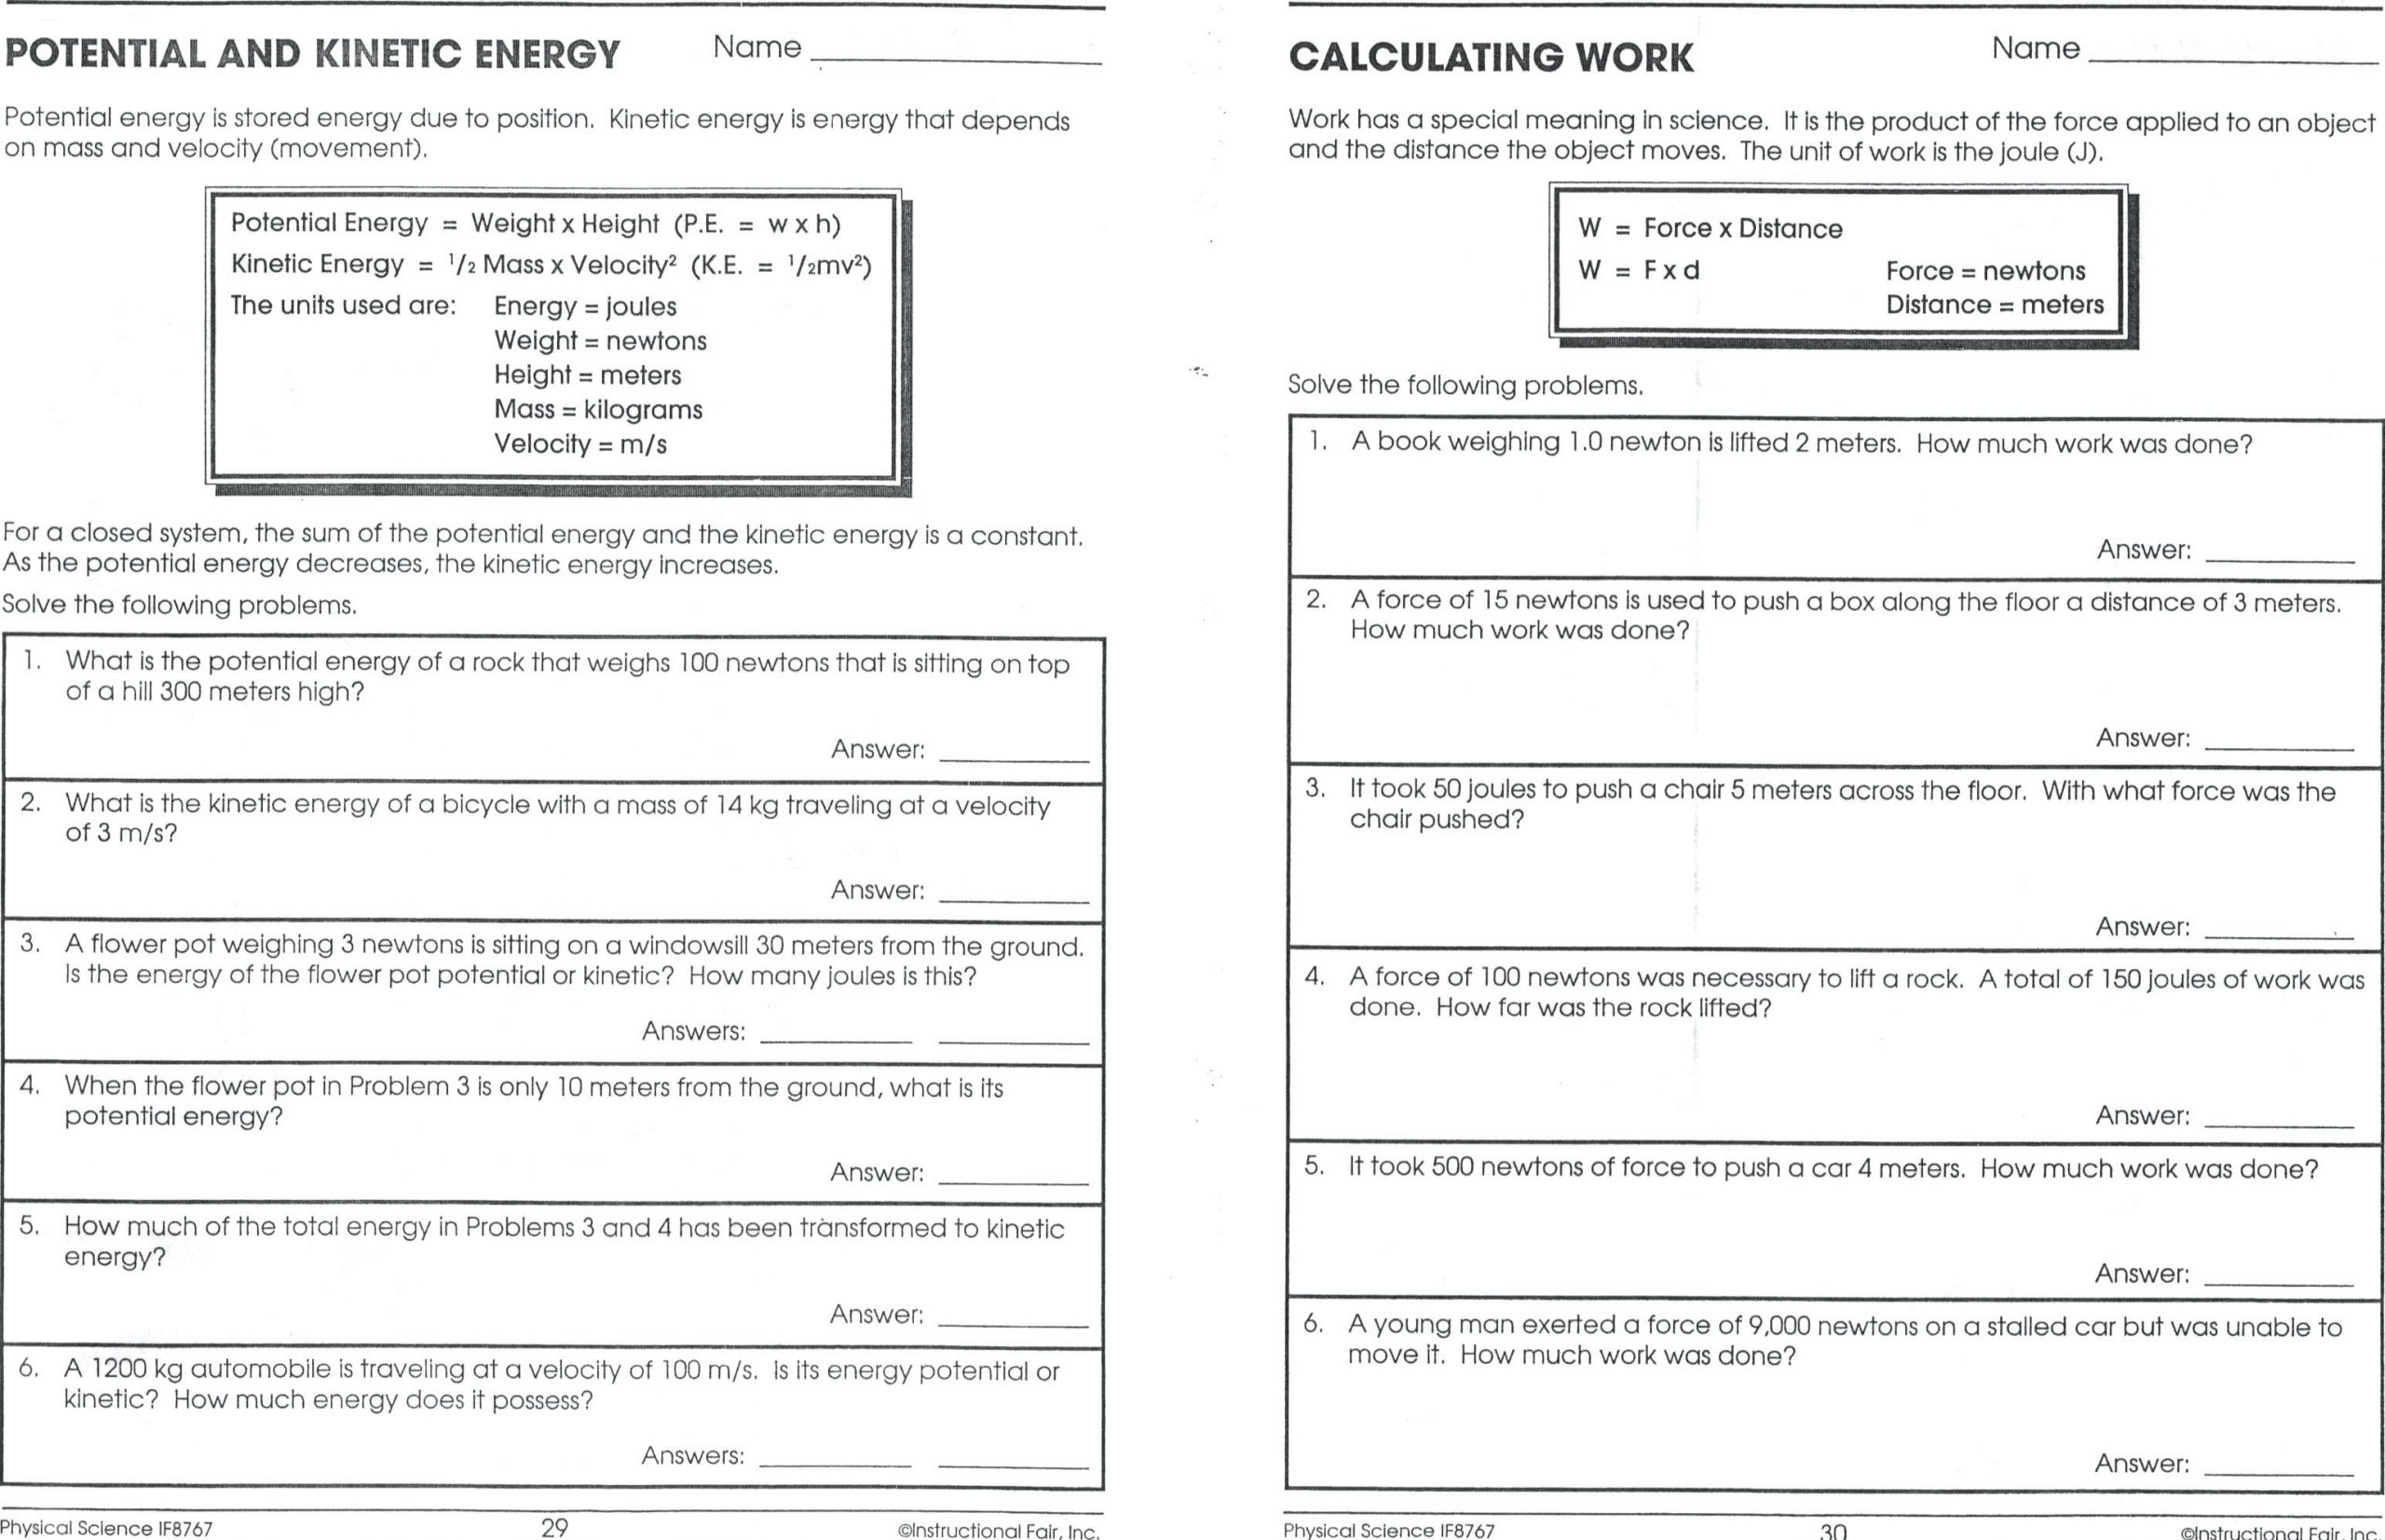 Energy Worksheets Middle School Pdf Potential and Kinetic Energy Worksheet 6th Grade Nidecmege